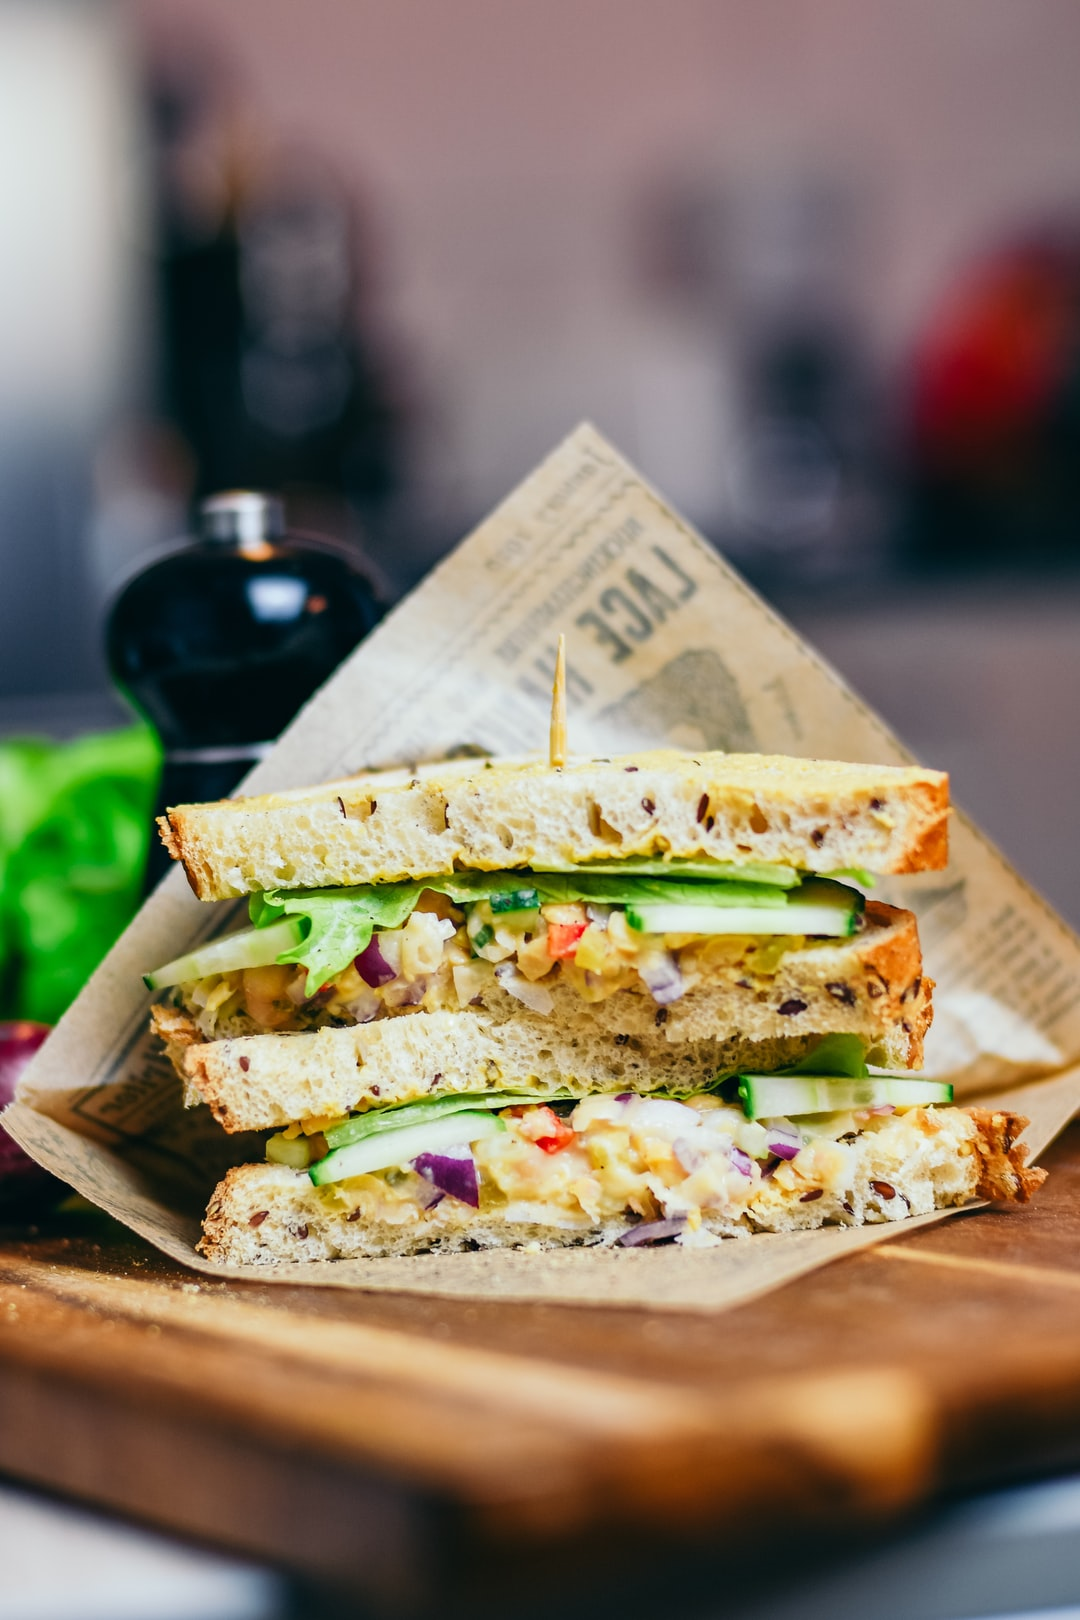 A vegan sandwich with chickpea salad